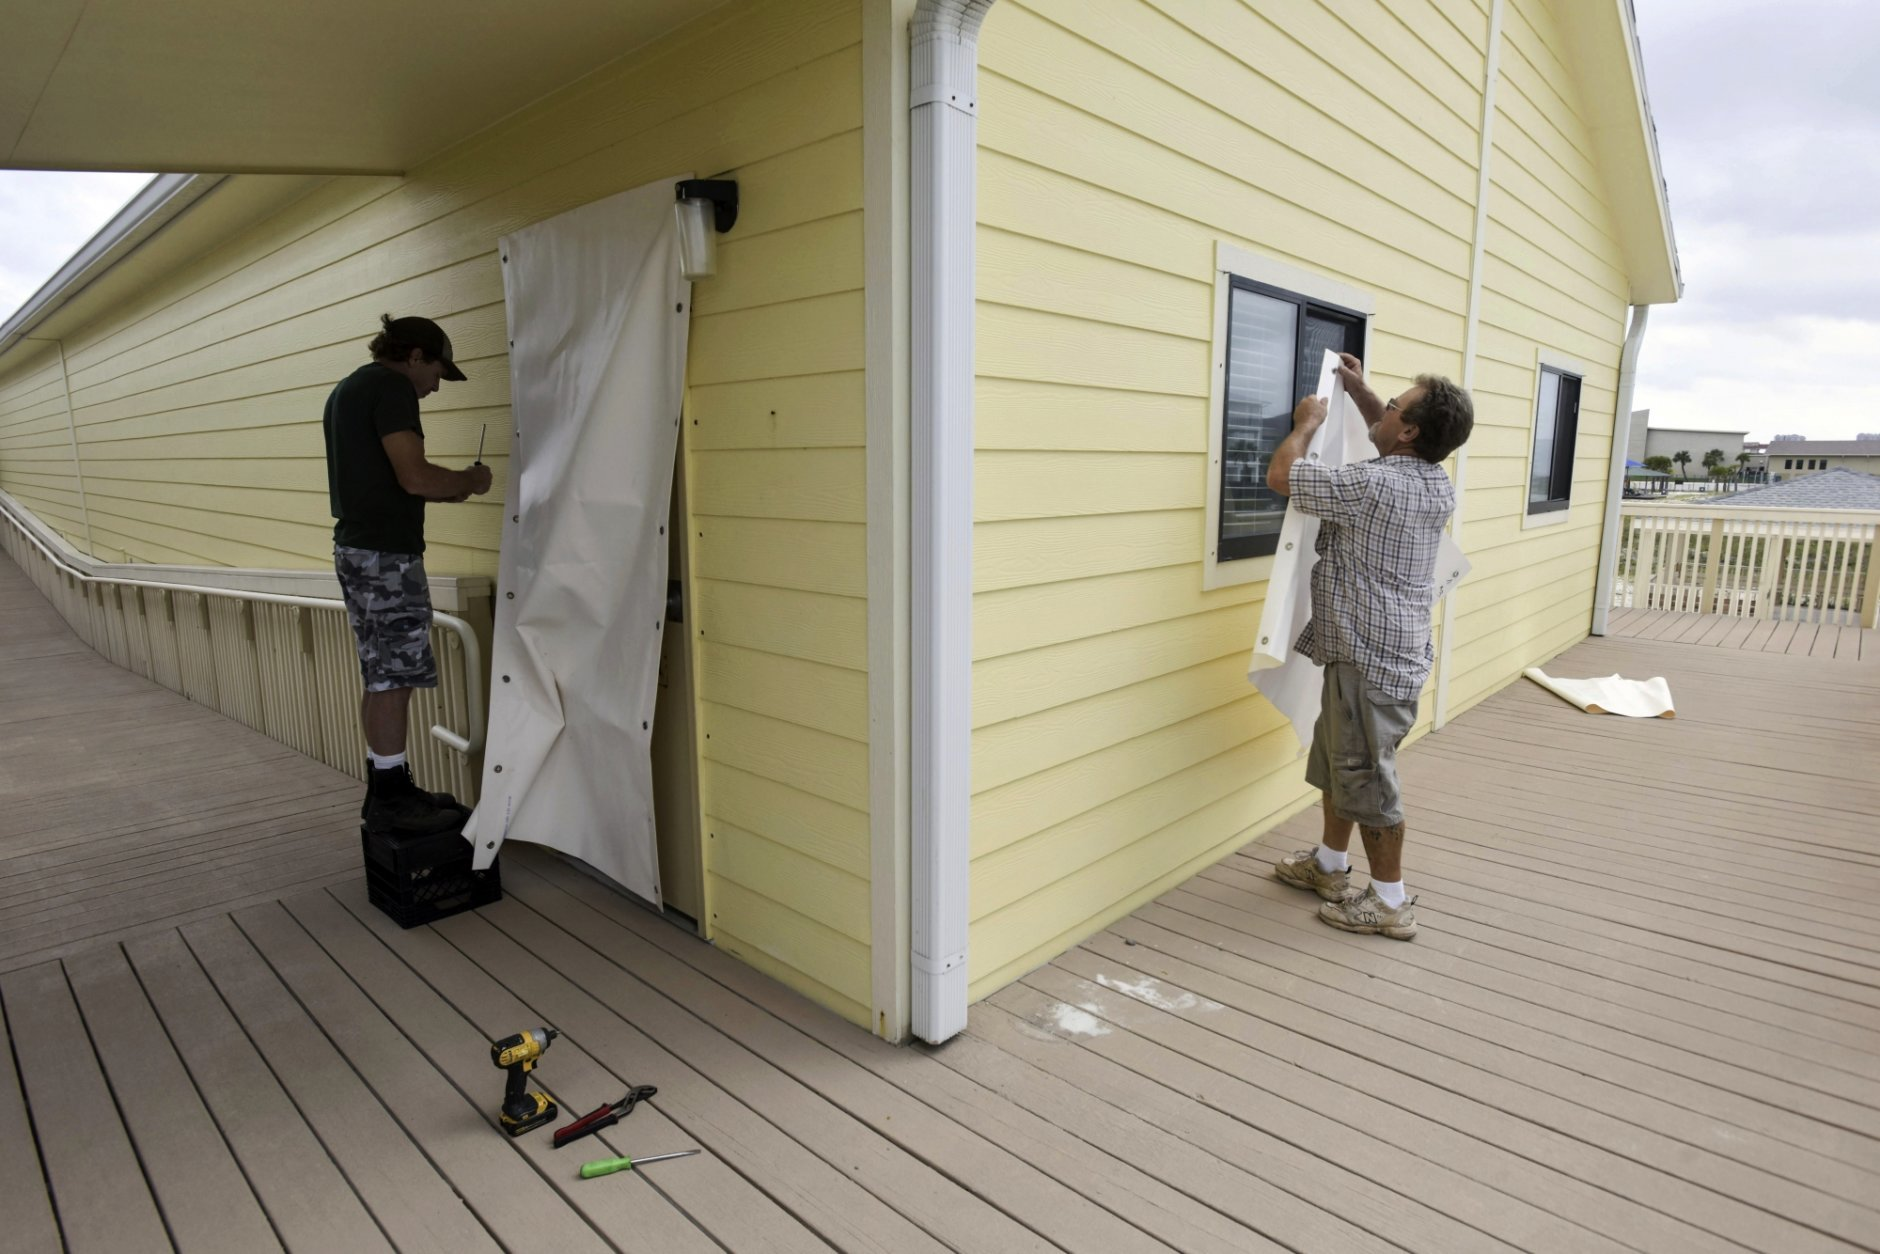 Volunteers install fabric storm panels at Pensacola Beach Elementary School, Tuesday, Oct. 9, 2018 in Pensacola, Fla. Hurricane Matthew is strengthening over the Gulf of Mexico and expected to make landfall in Florida's Panhandle or Big Bend area on Wednesday. Mandatory evacuations are in effect for coastal and low lying areas of the Florida Panhandle. ( Tony Giberson/Pensacola Beach News Journal via AP)/Palm Beach Post via AP)